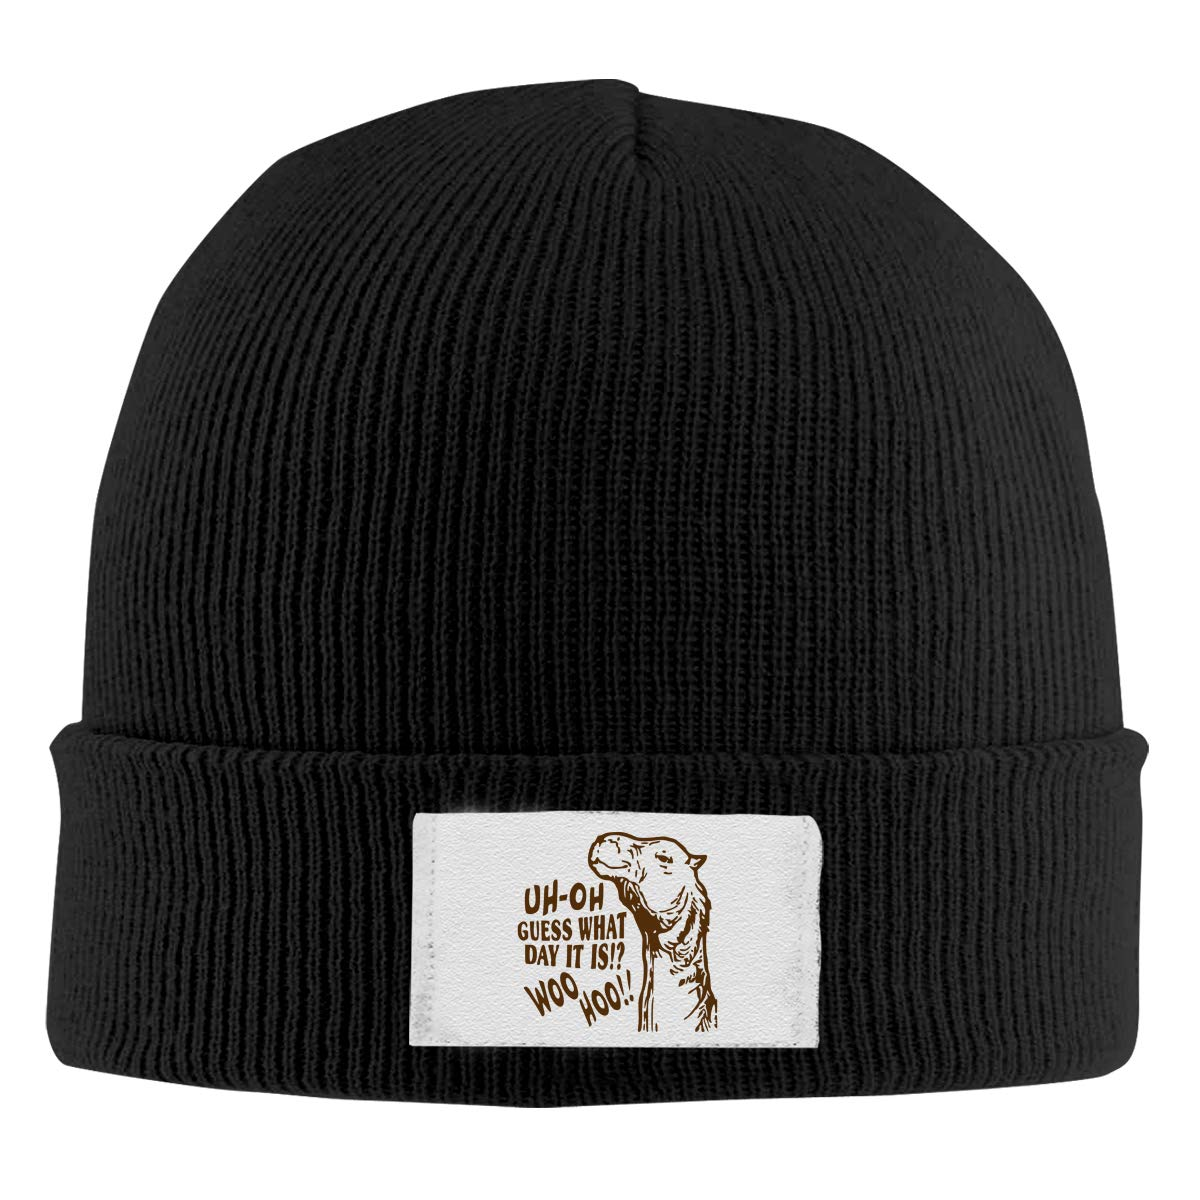 Oh Guess What Day It is Woo Knit Hat Beanies Cap Cotton Unisex Winter Black